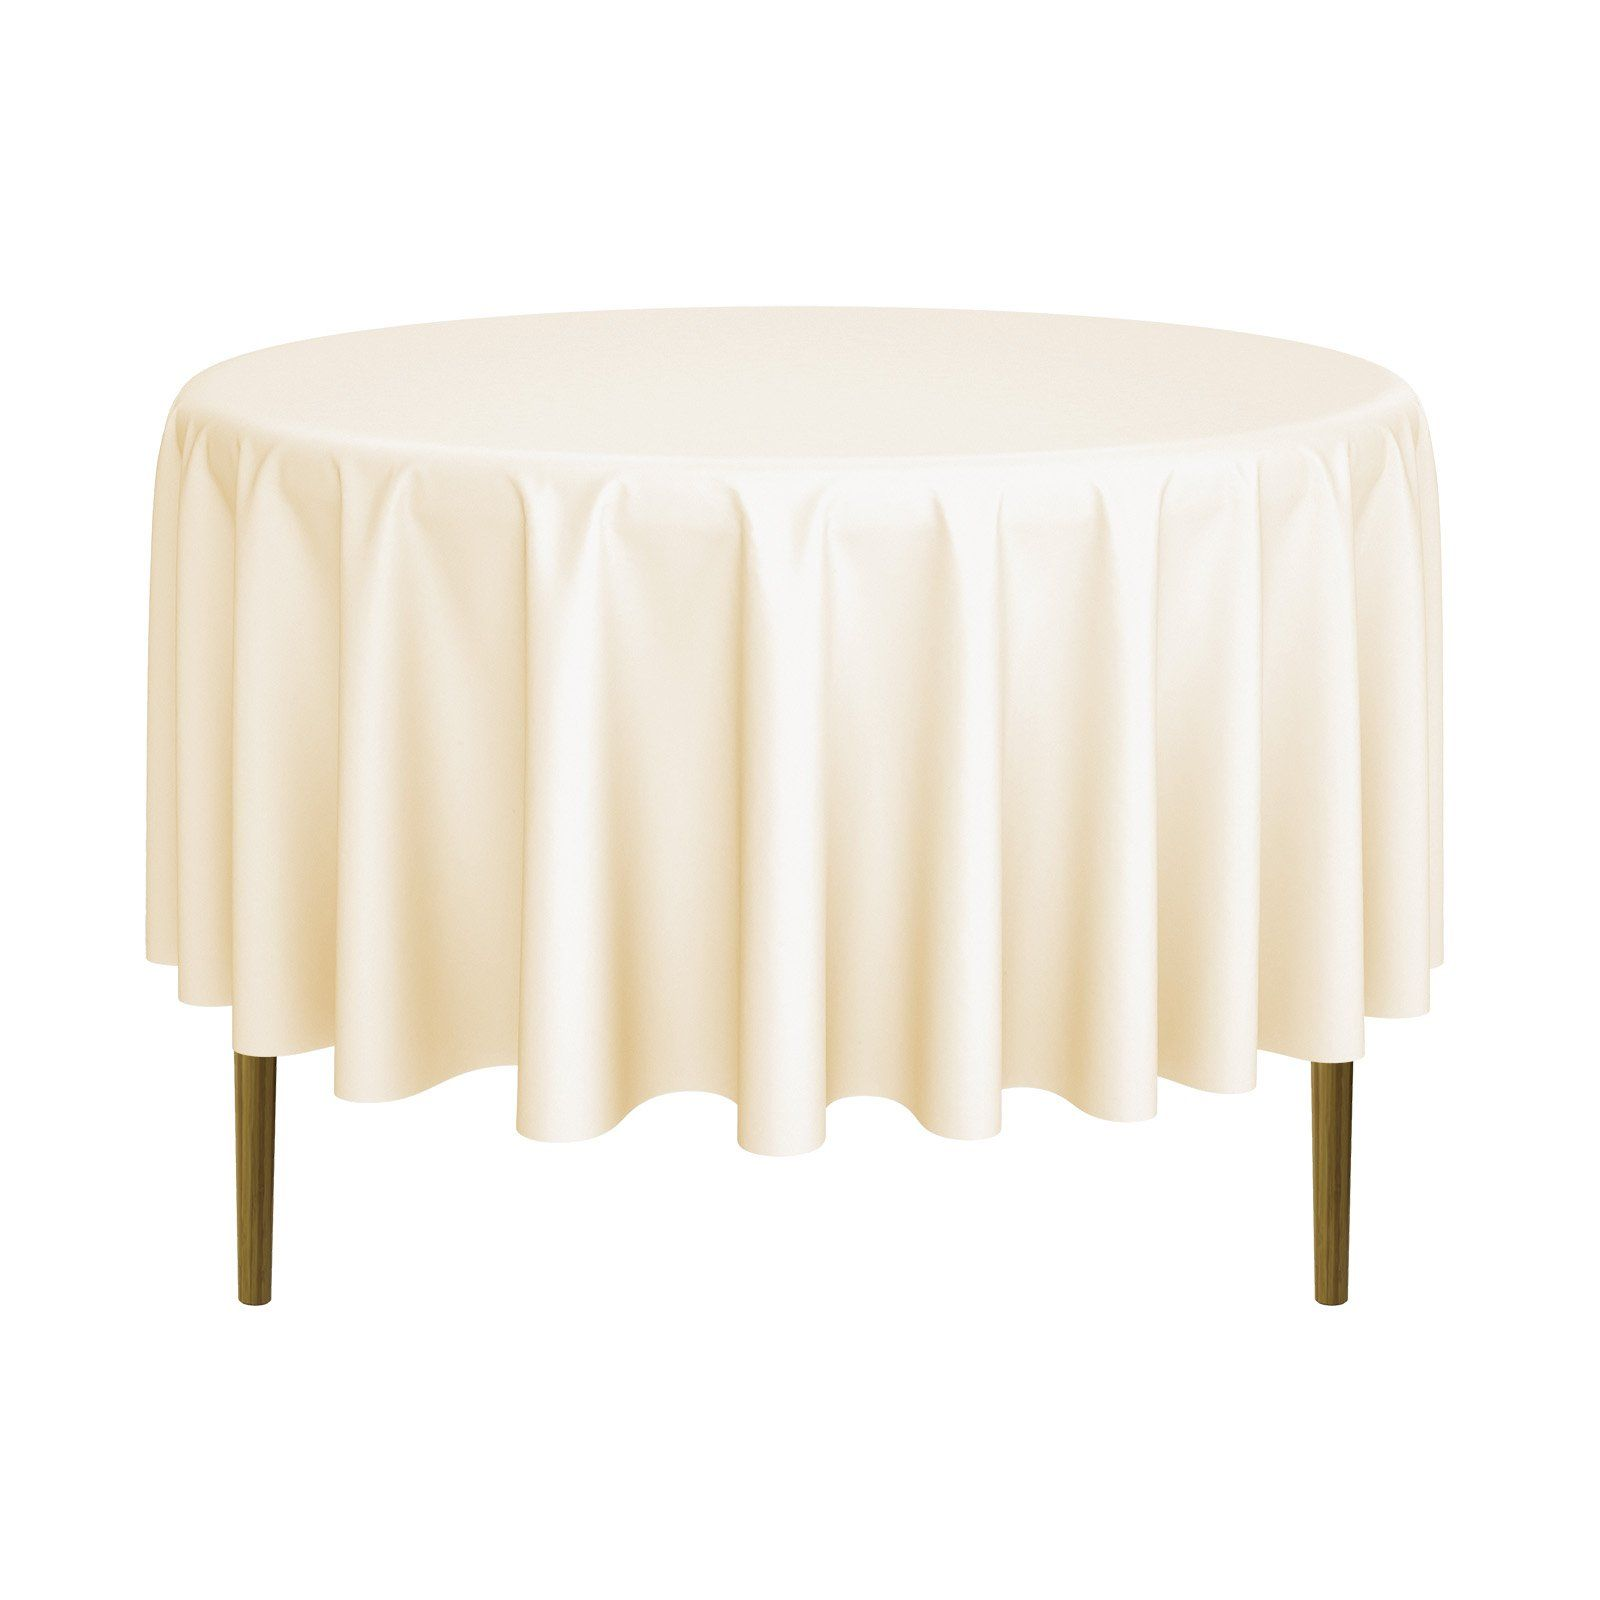 20 Pack Round Wedding Banquet Polyester Fabric Tablecloths More